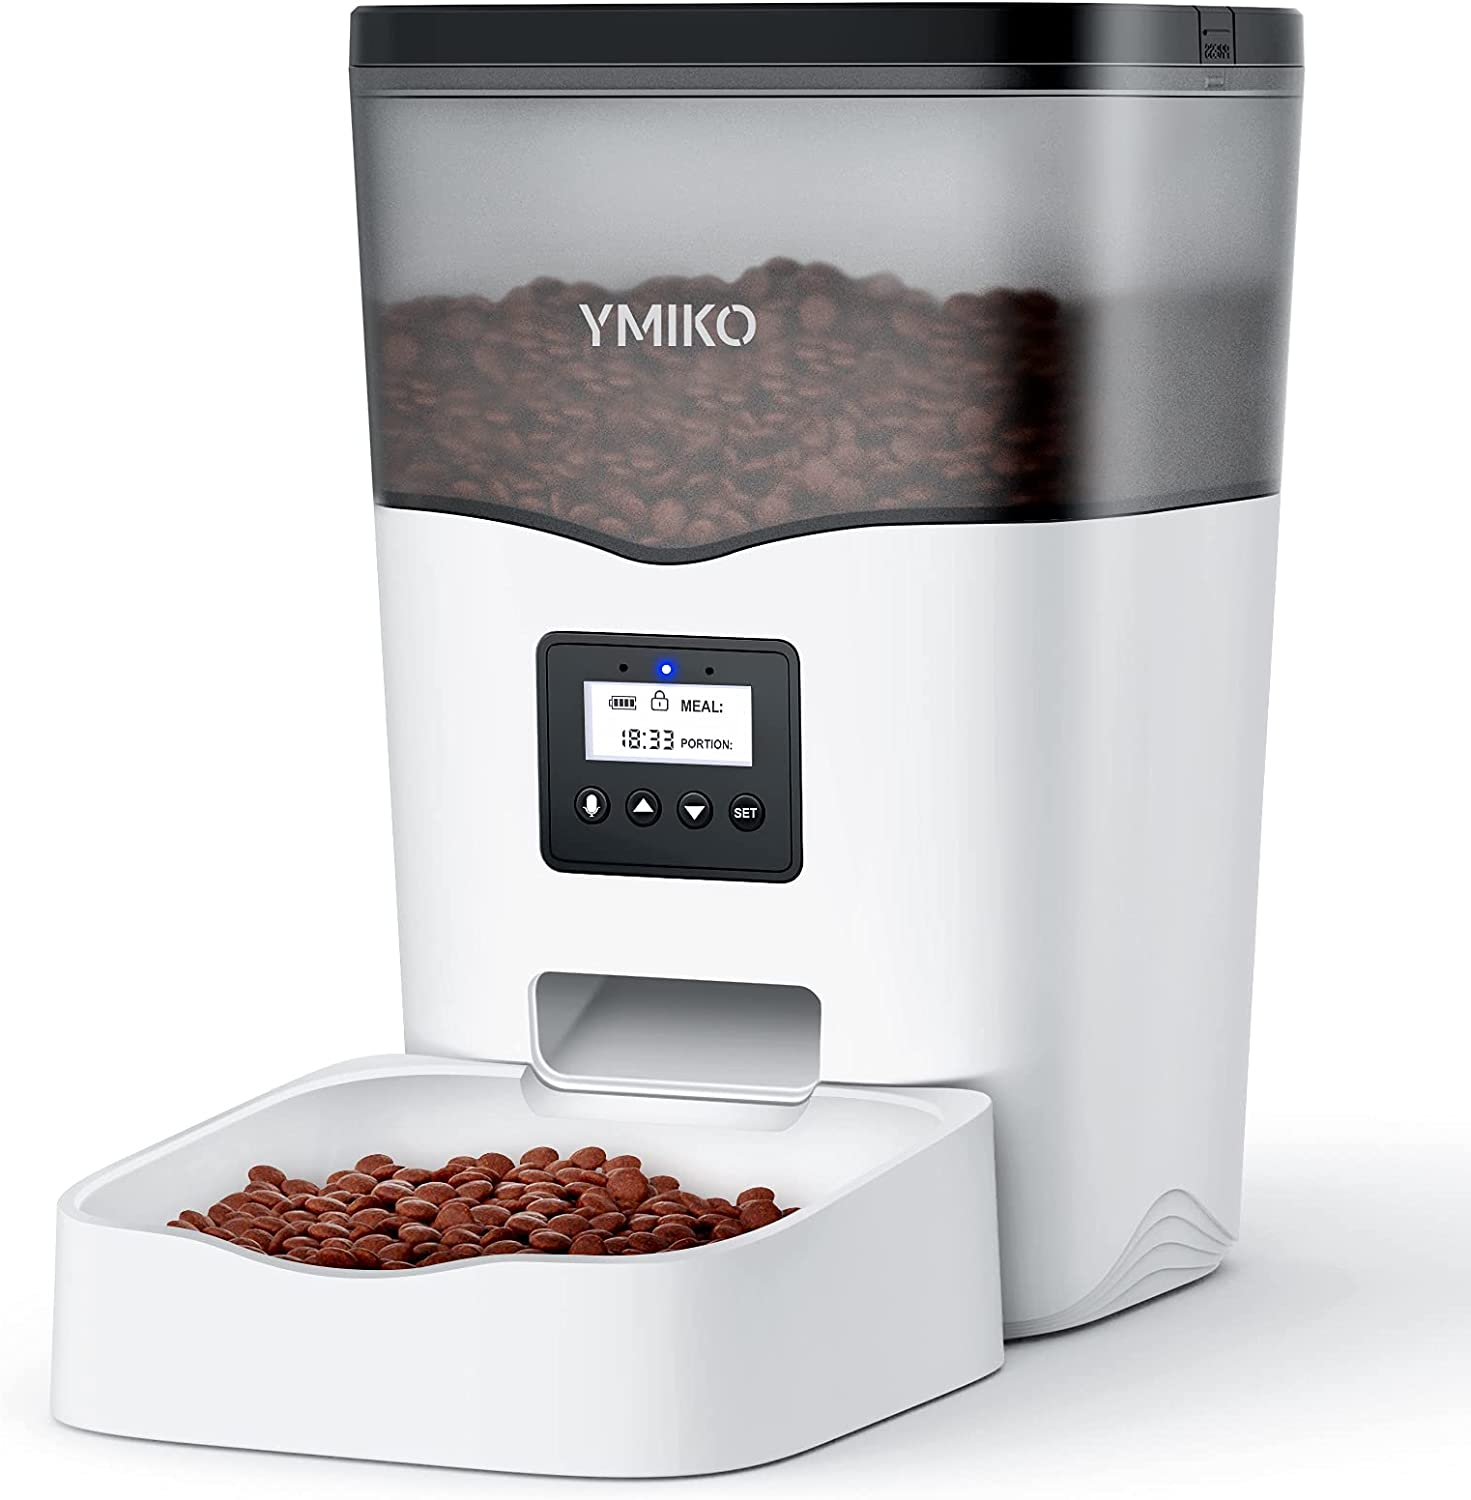 Ymiko Automatic Cat Feeder, Cat Food Dispenser with Voice Recorder, Timed Small Pet Feeder with Programmable Timer, 1-4 Meals Per Day (3L)